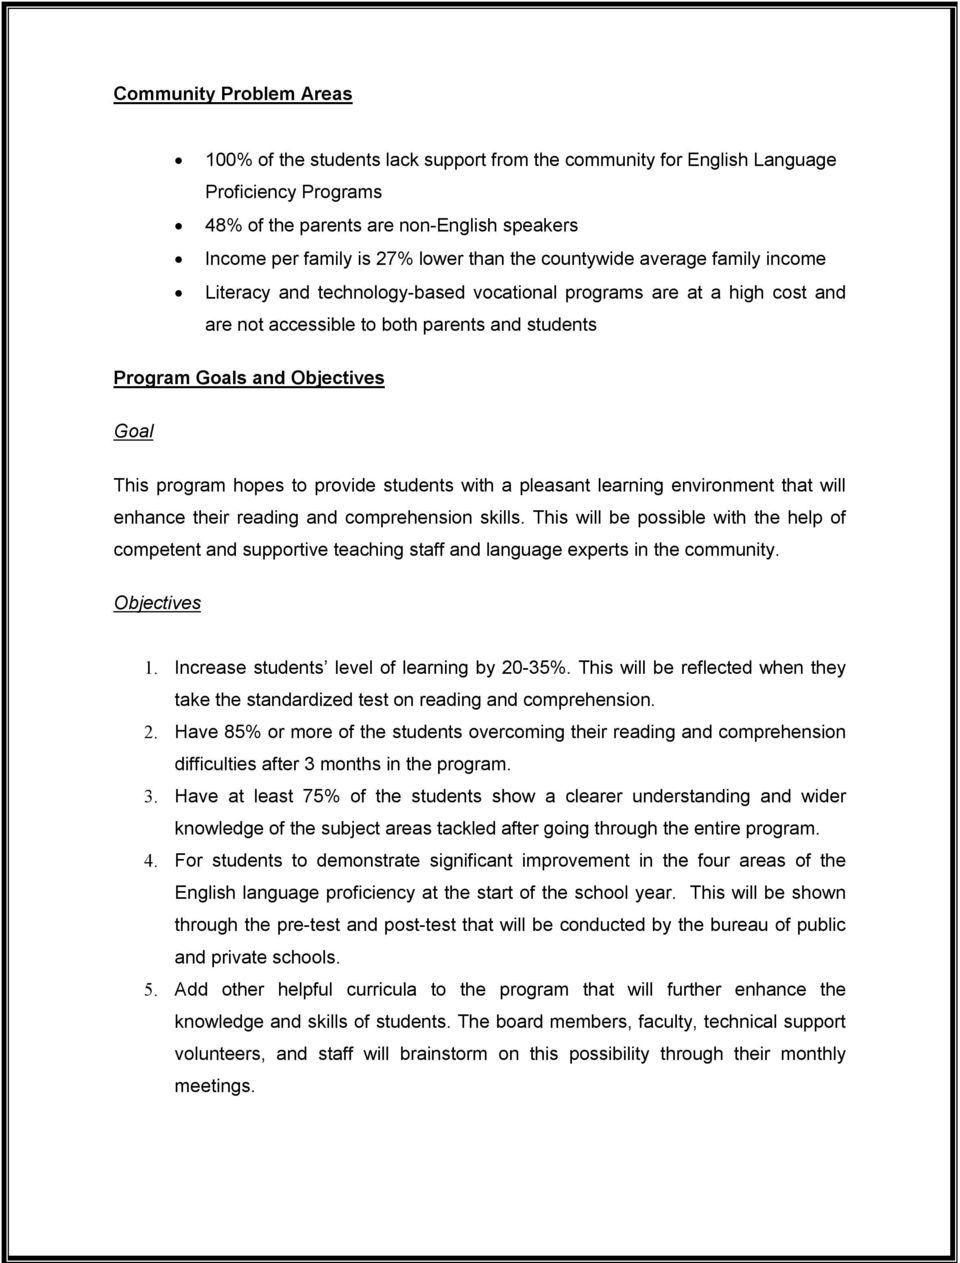 program hopes to provide students with a pleasant learning environment that will enhance their reading and comprehension skills.